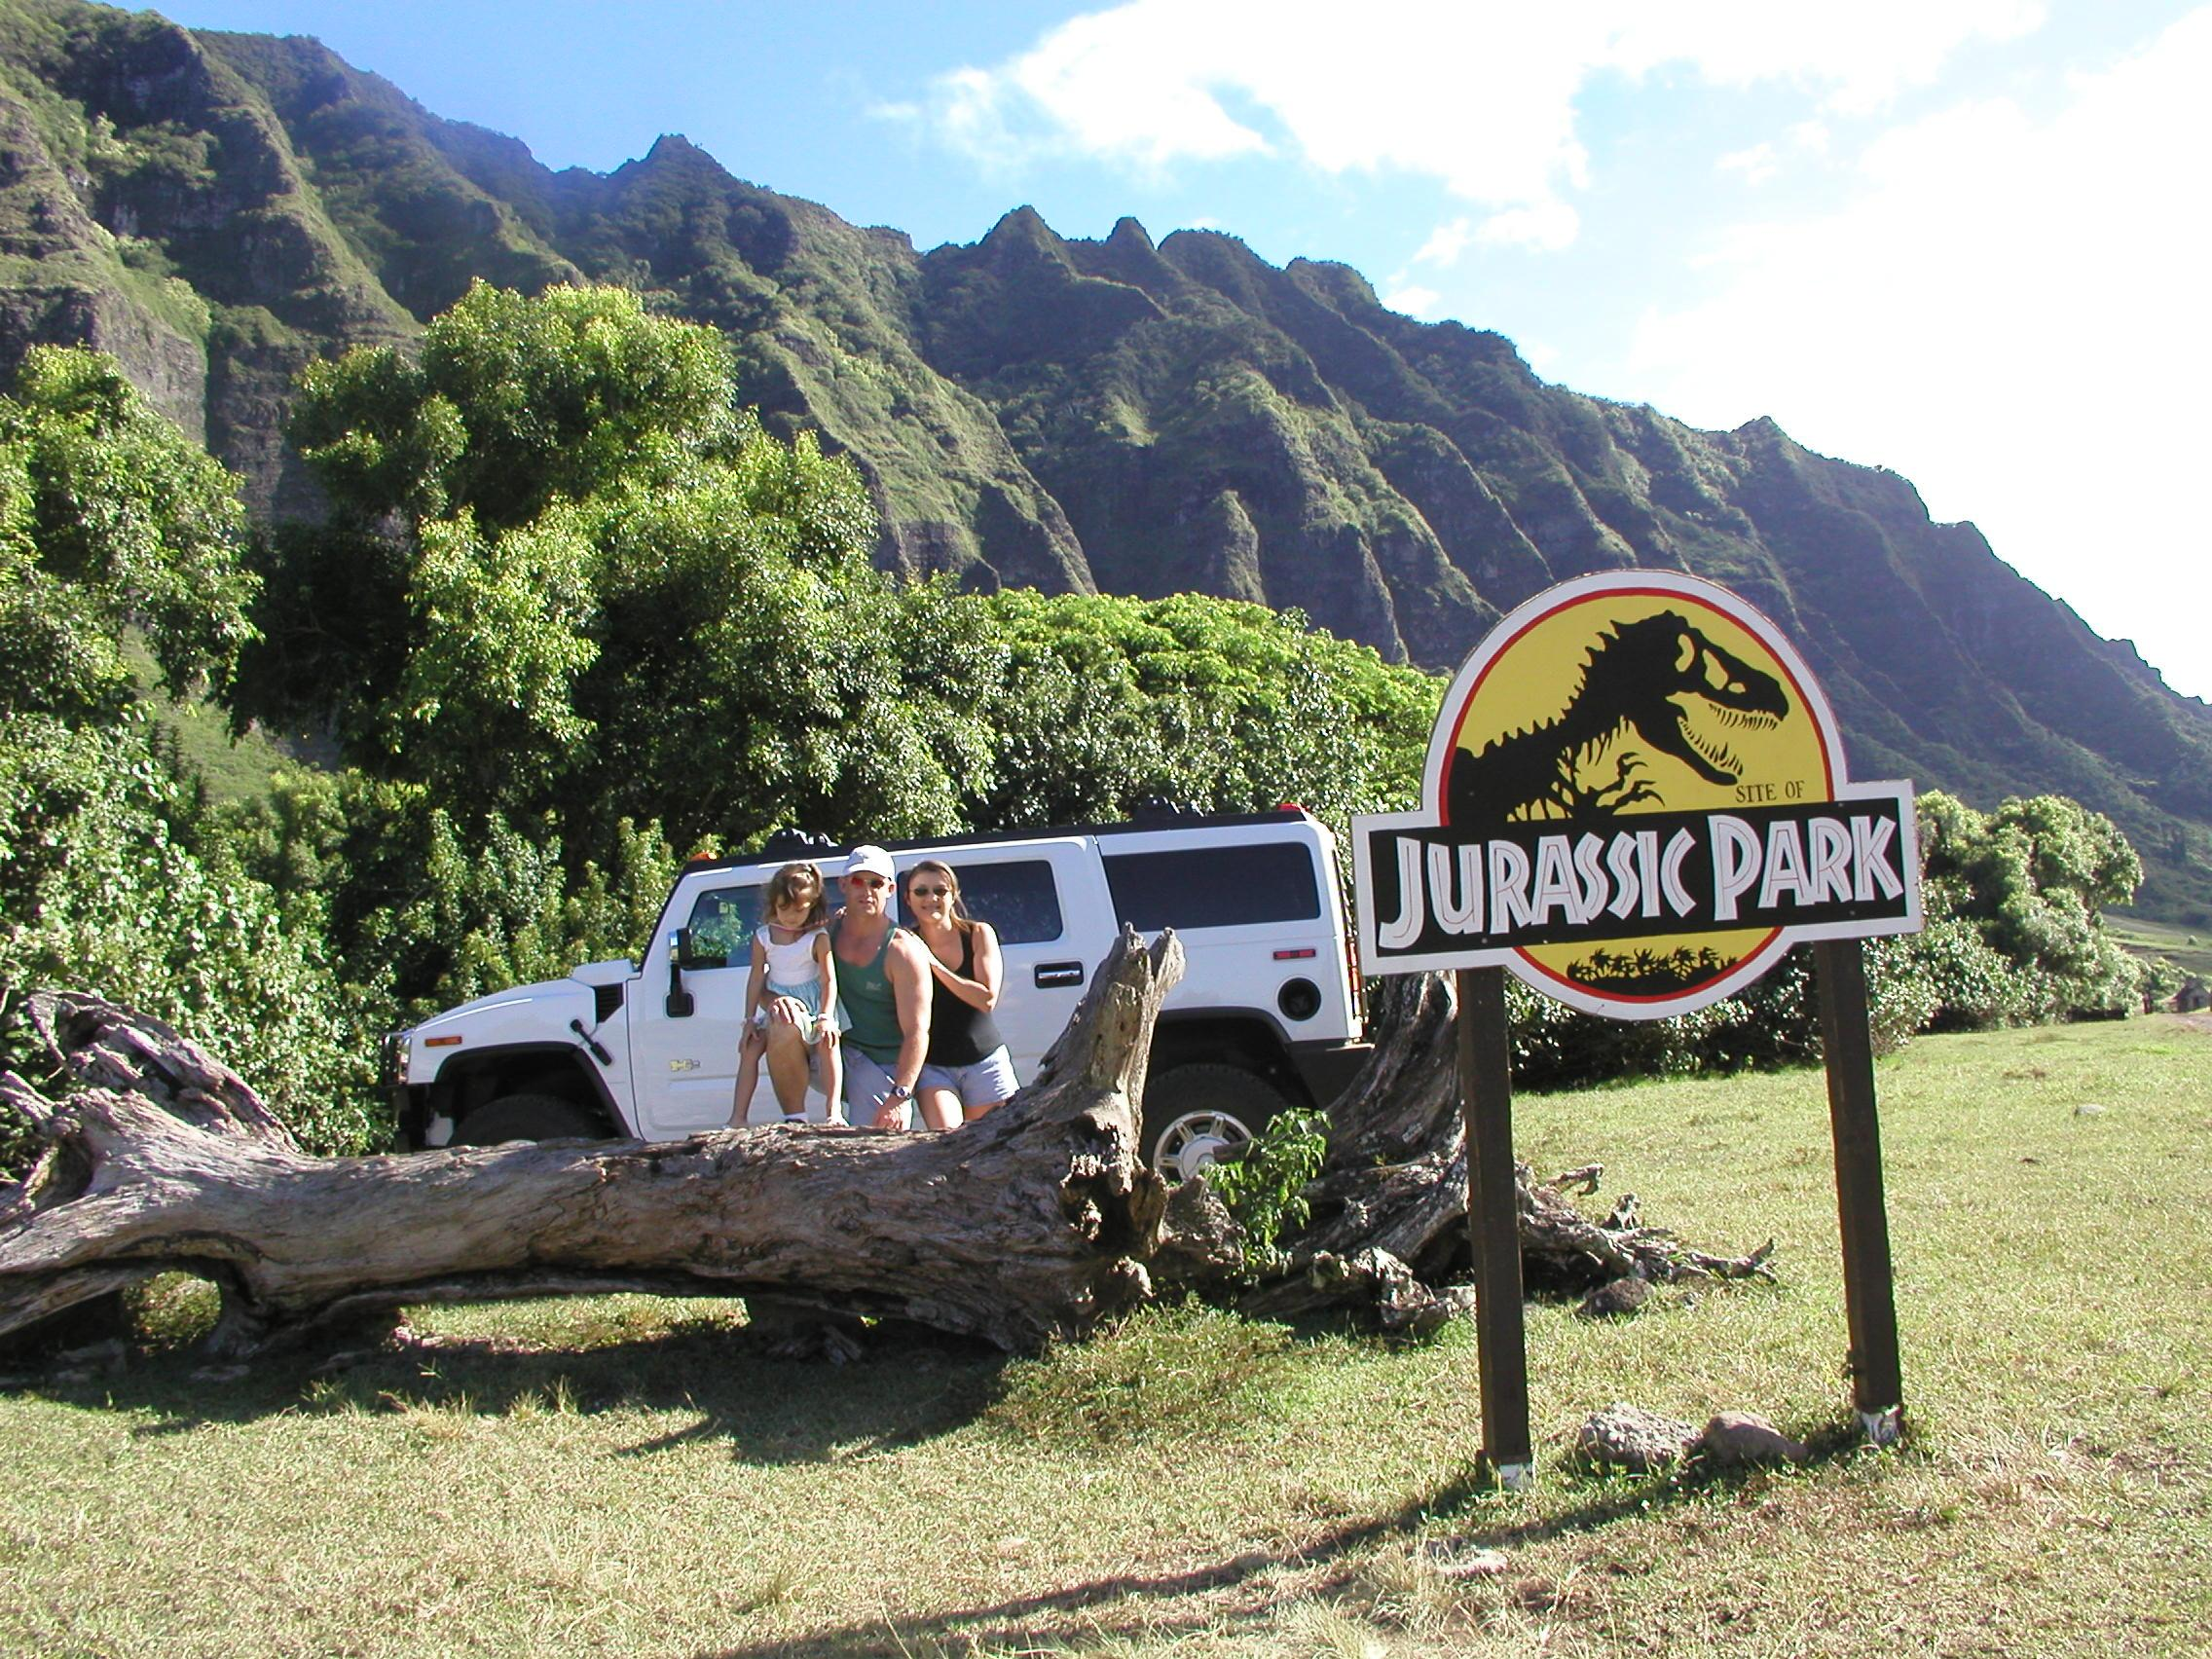 kauai helicopter tours with 2 Hour Lost Locations on Activities additionally 2 Hour Lost Locations further 9 Awesome Fiery Hawaii Volcano Images additionally Kauai Waimea Canyon Wailua River additionally Tour Molokai Voyage.